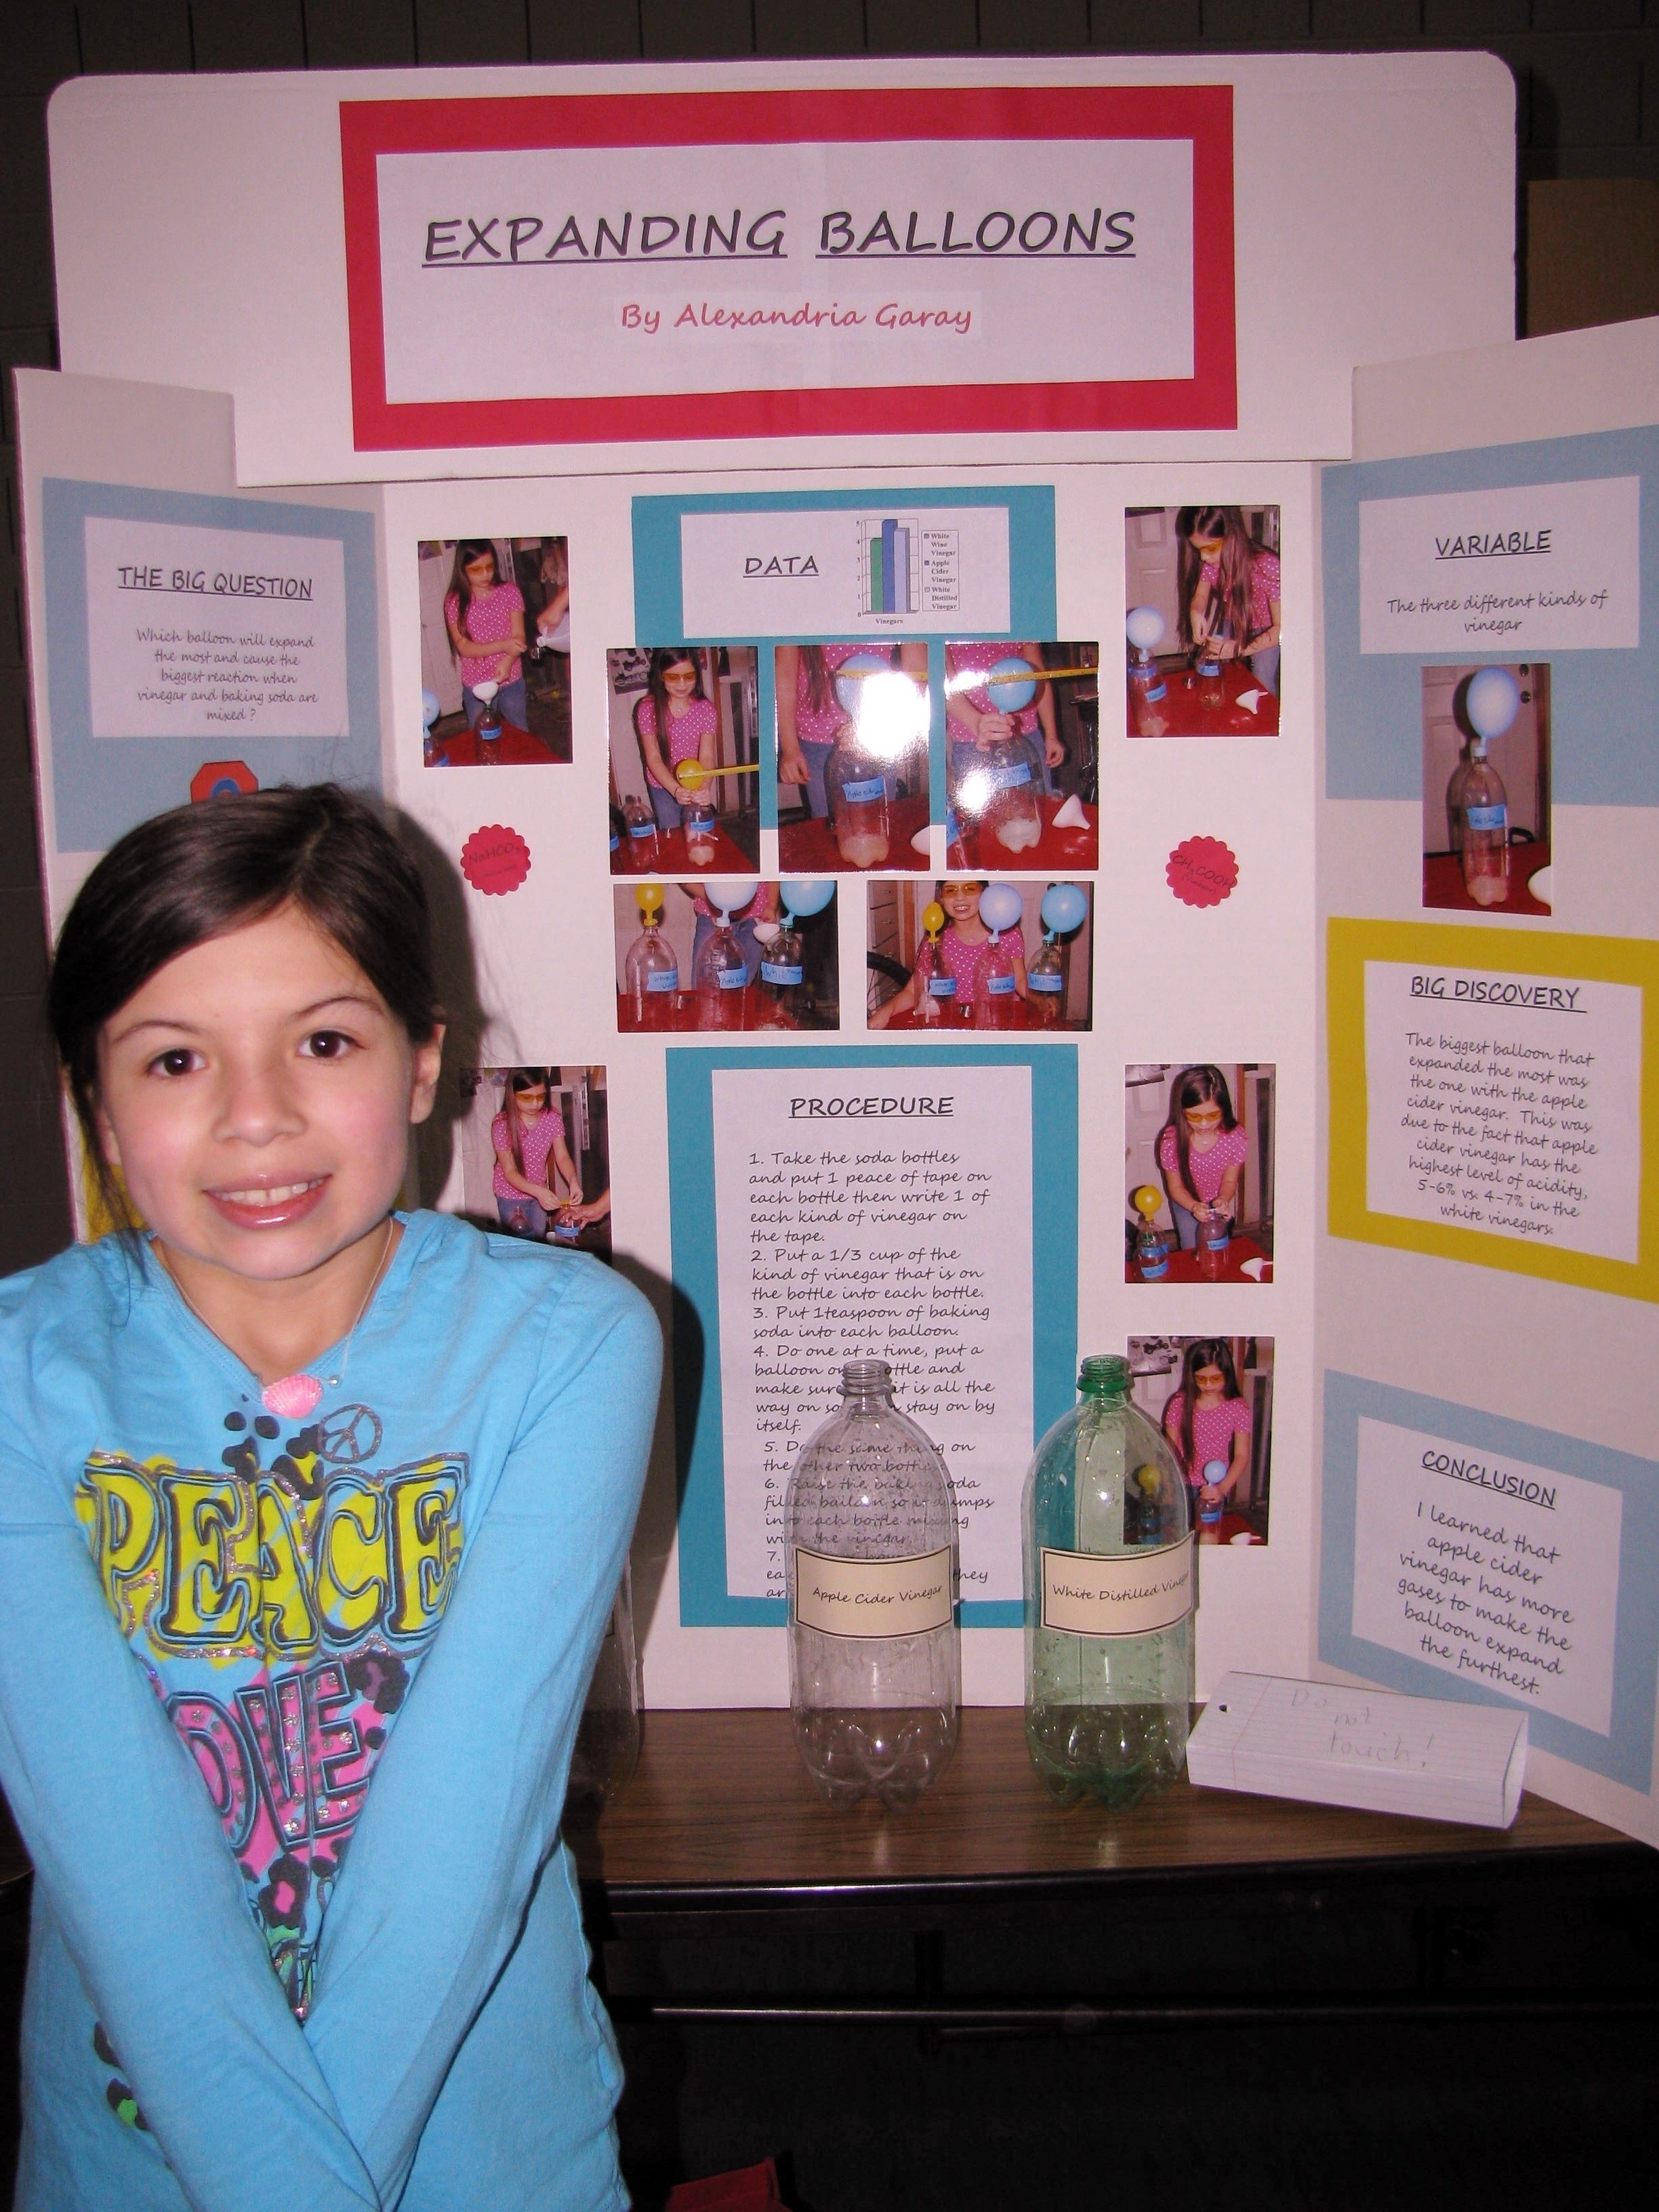 10 Cute Volcano Science Fair Project Ideas ultimate 4th grade science projects soda with science fair 2012 1 2020